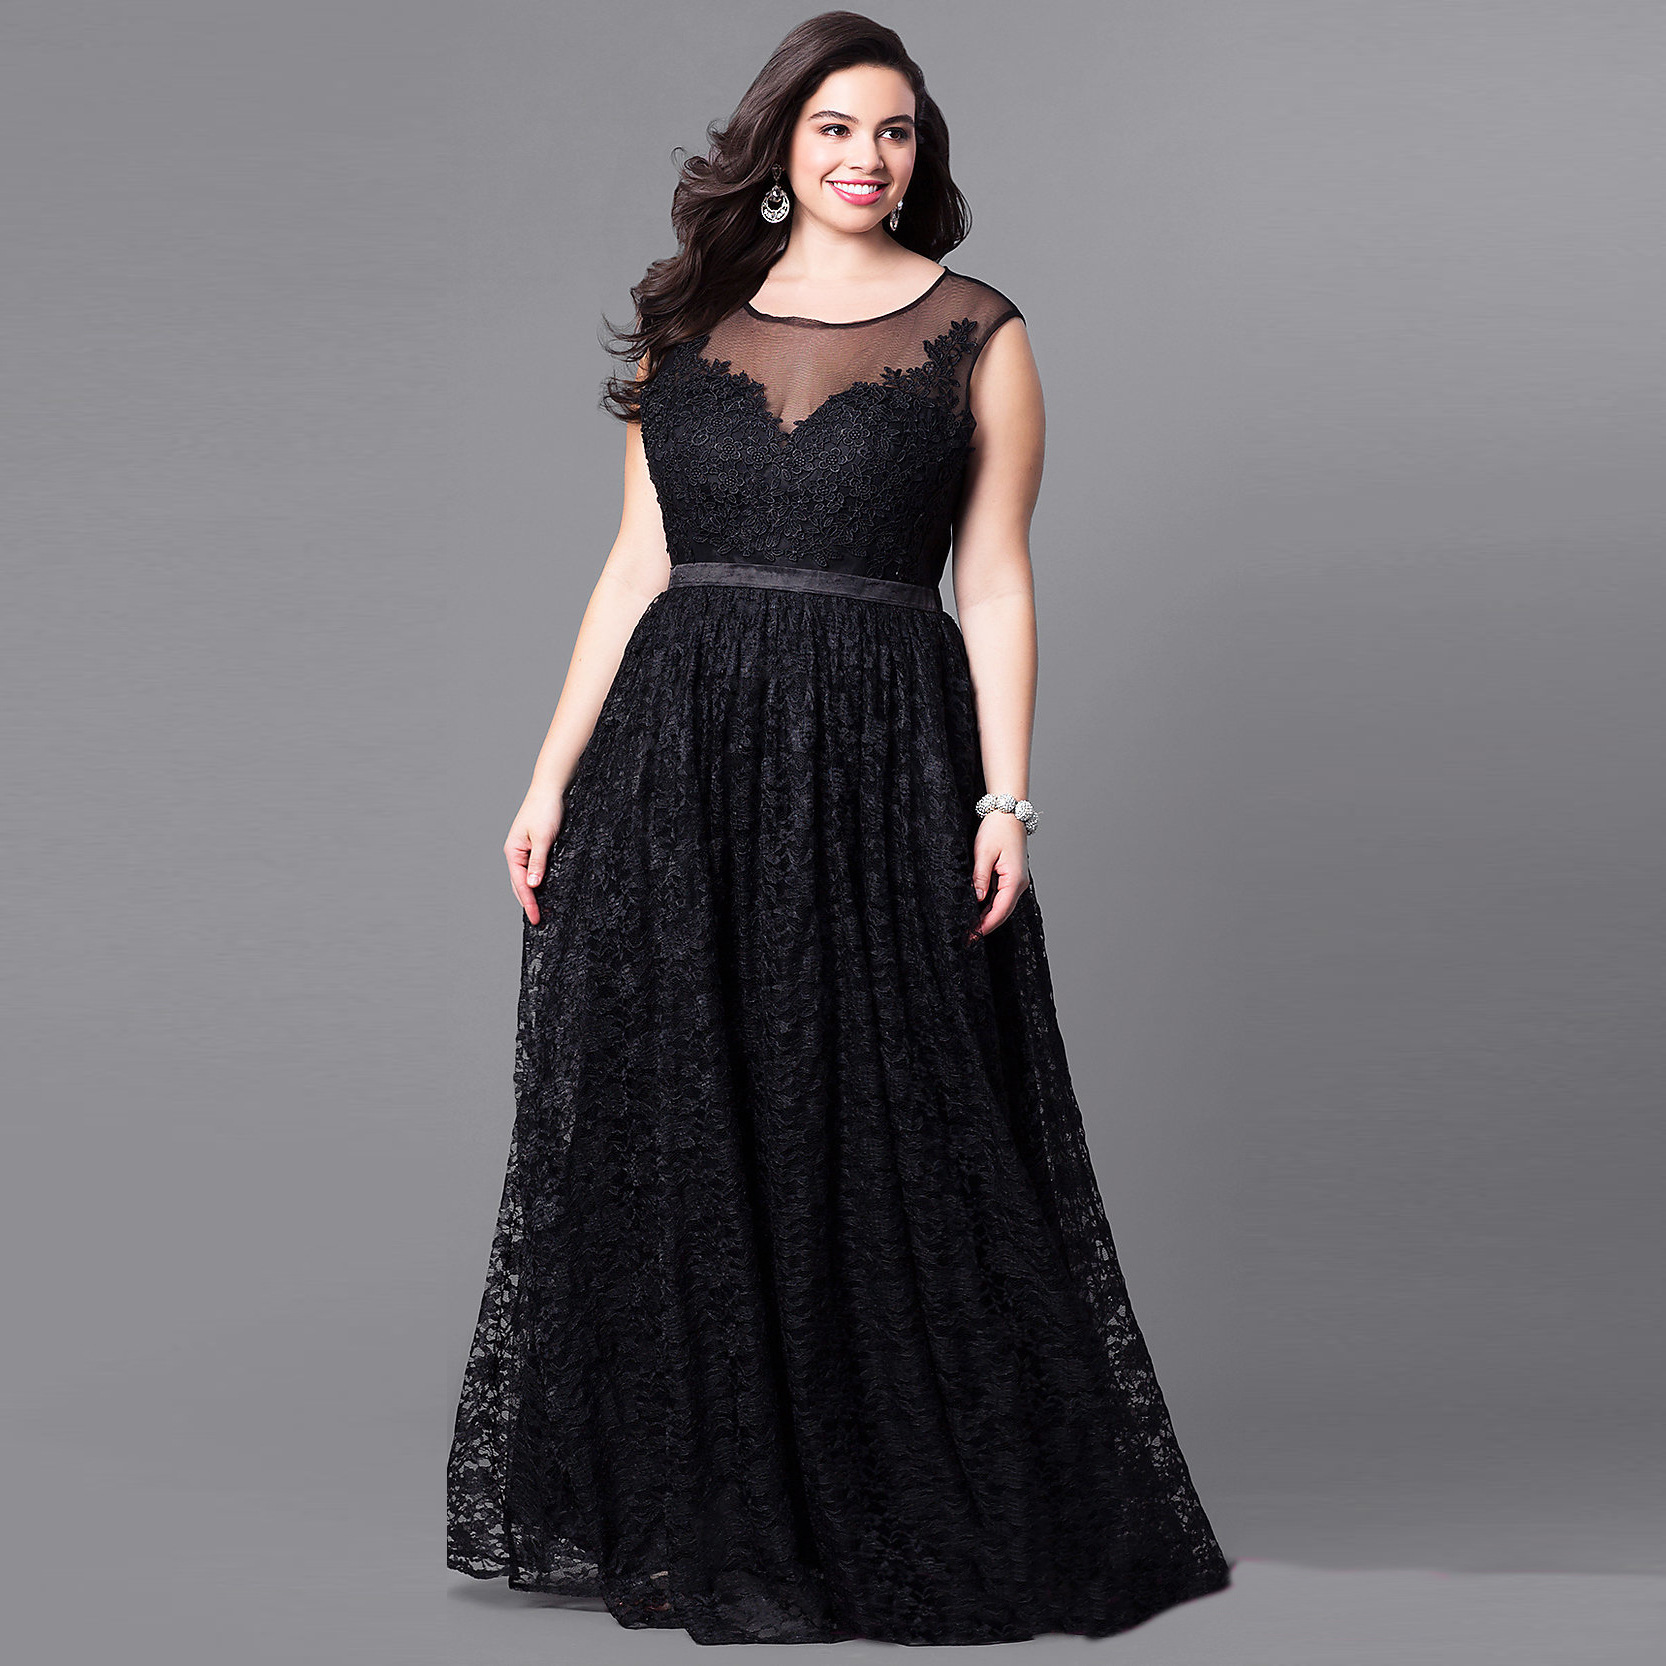 df6a71effc Summer Autumn Plus Size Off Shoulder Lace Maxi Dress Women Sexy Sleeveless  Evening Party Night Club A Line Long Dresses Black-in Dresses from Women s  ...